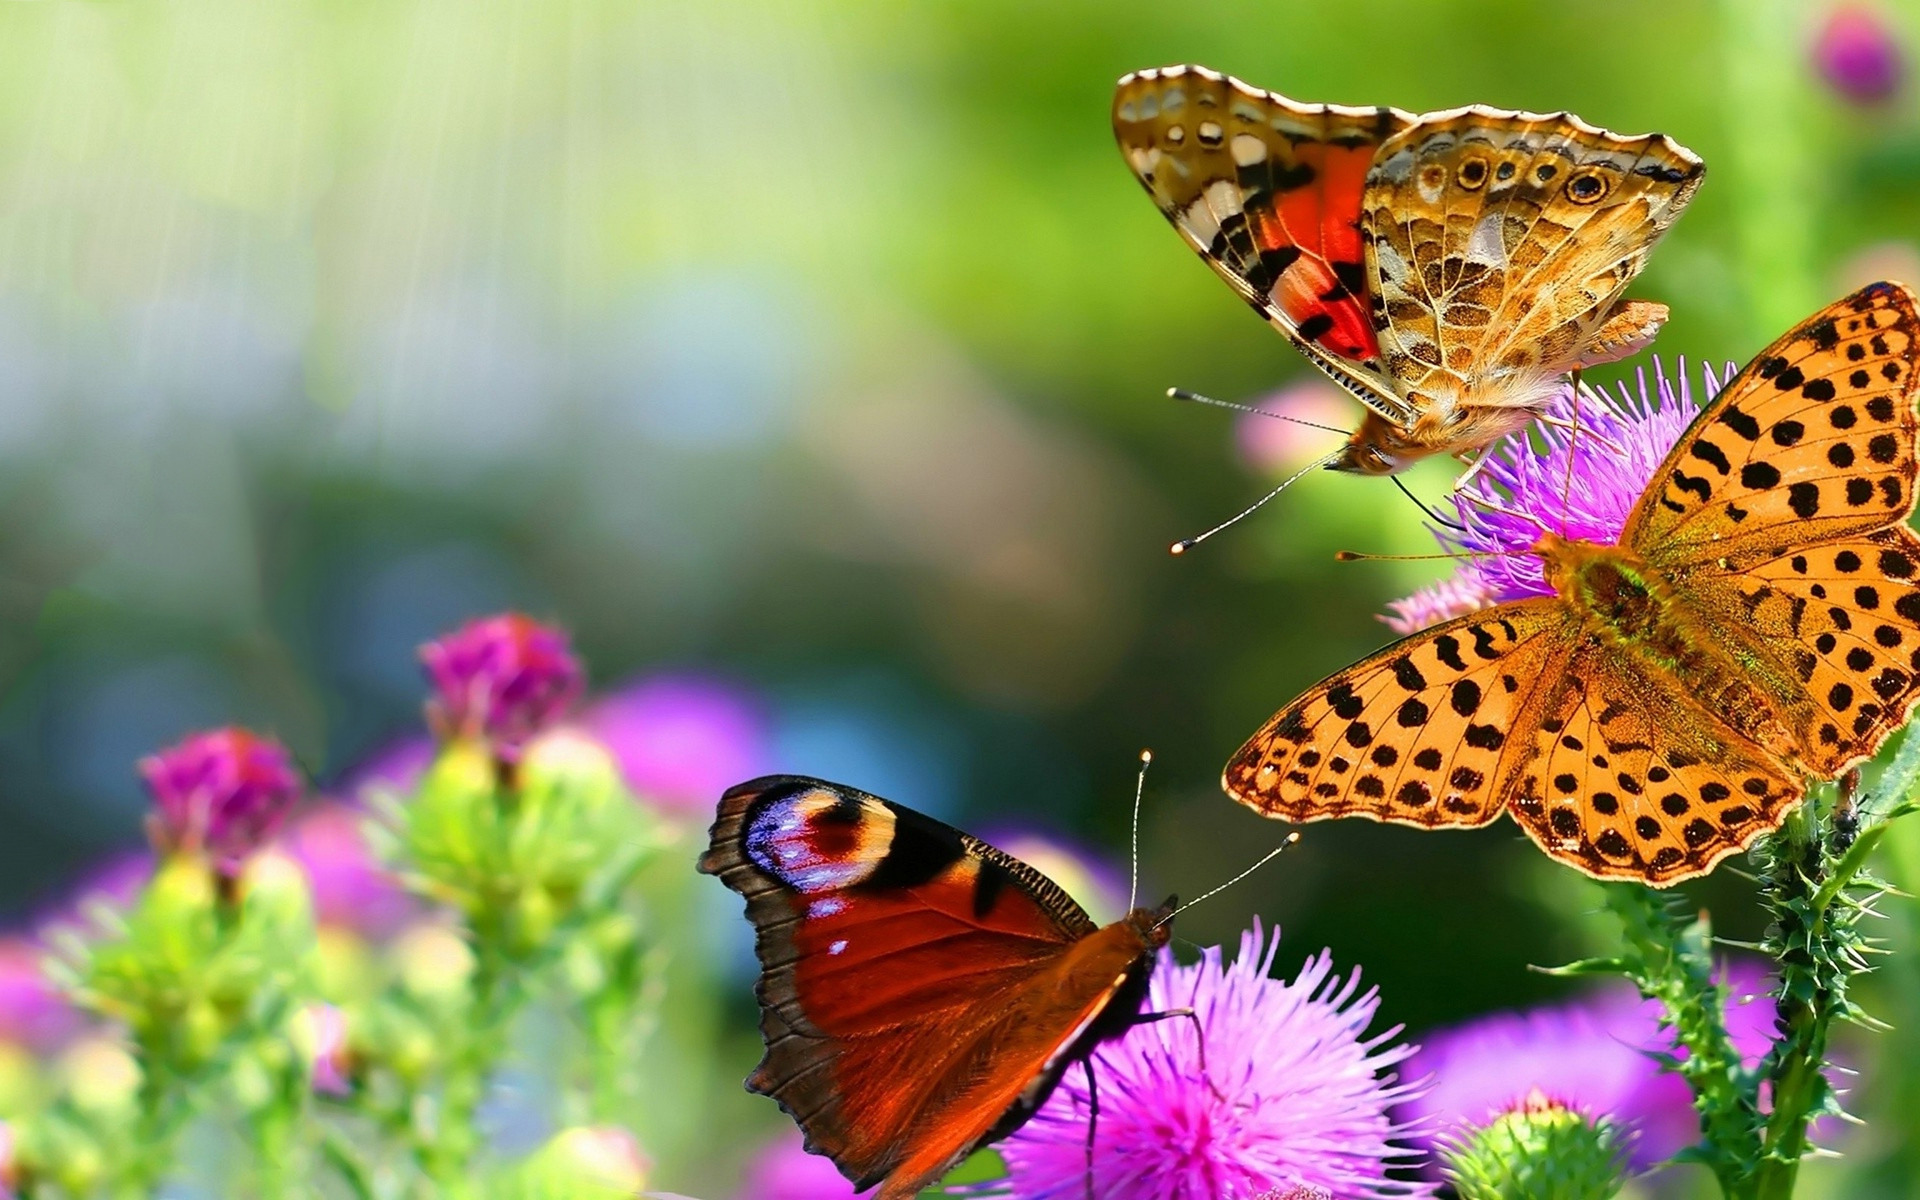 Beautiful Butterflies Wallpapers, Pictures, Images - photo#9